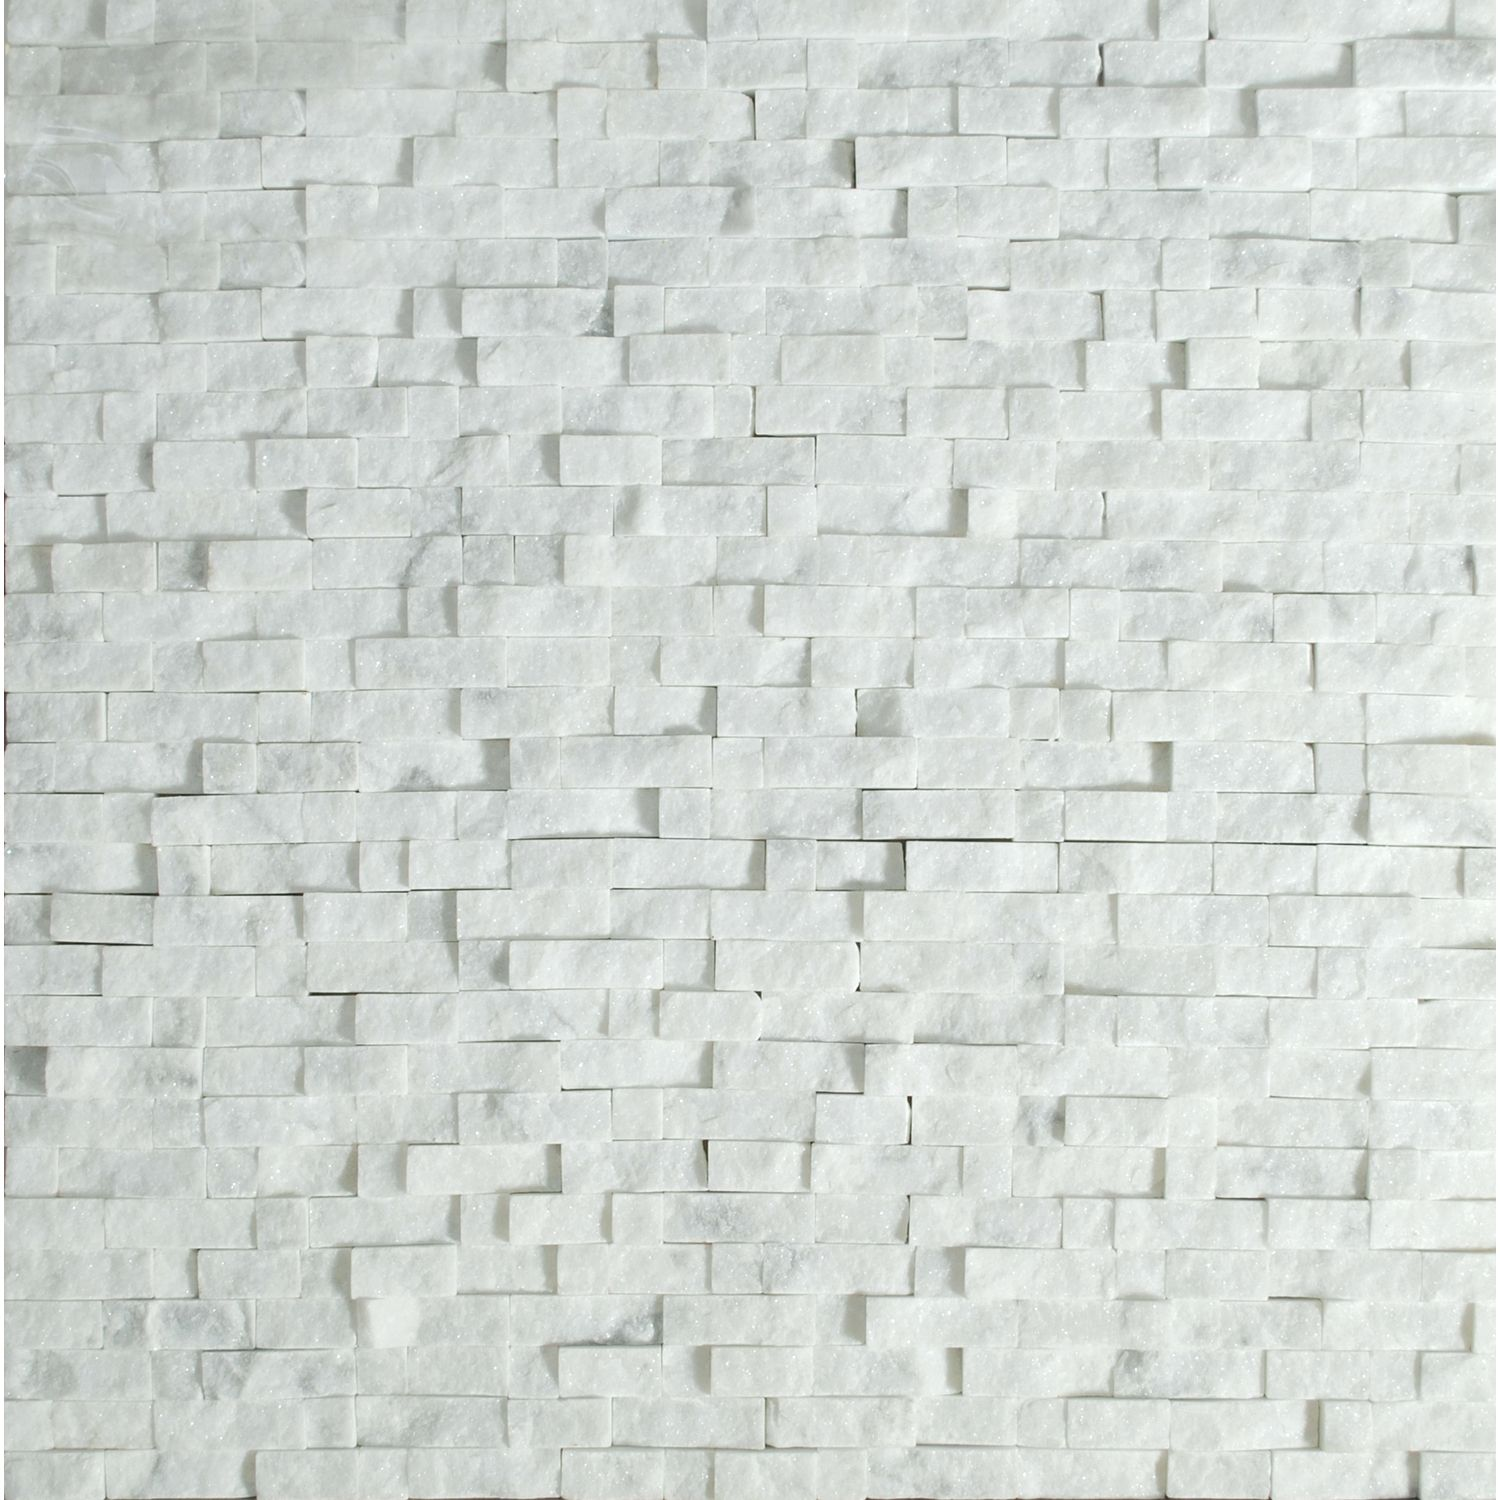 12X12 Decorative Tiles Prepossessing Tesoro 12 X 12 Carrara Micro Mosaic Sheet From Split Face Design Decoration